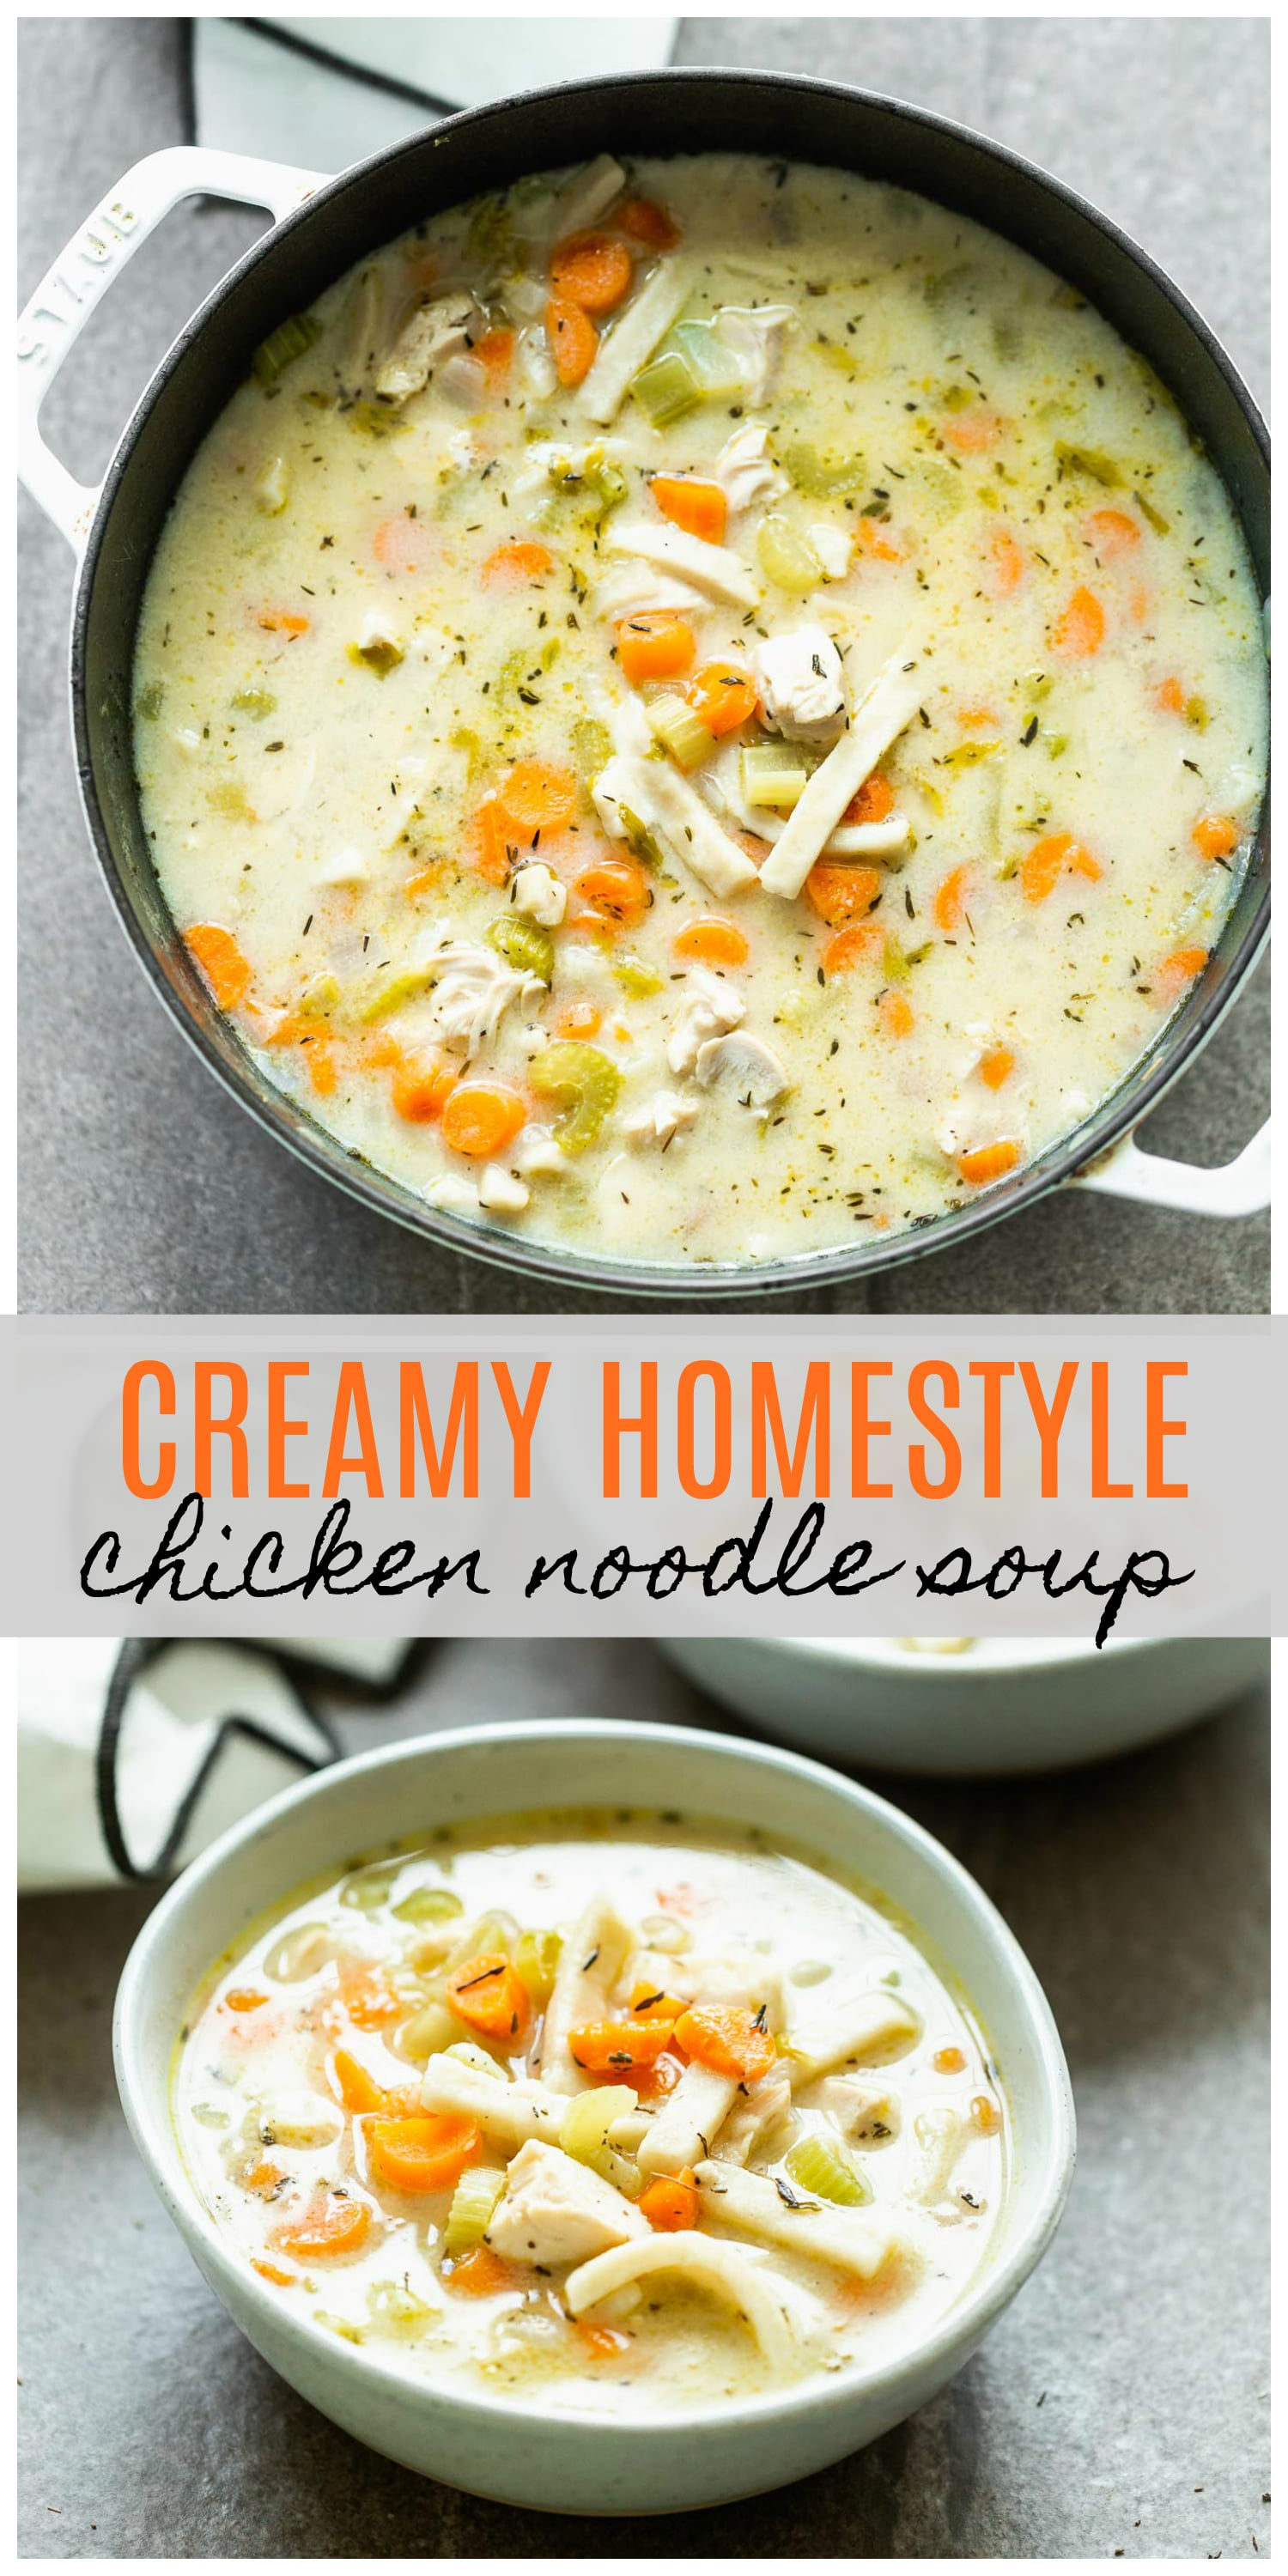 Creamy Homestyle Chicken Noodle Soup